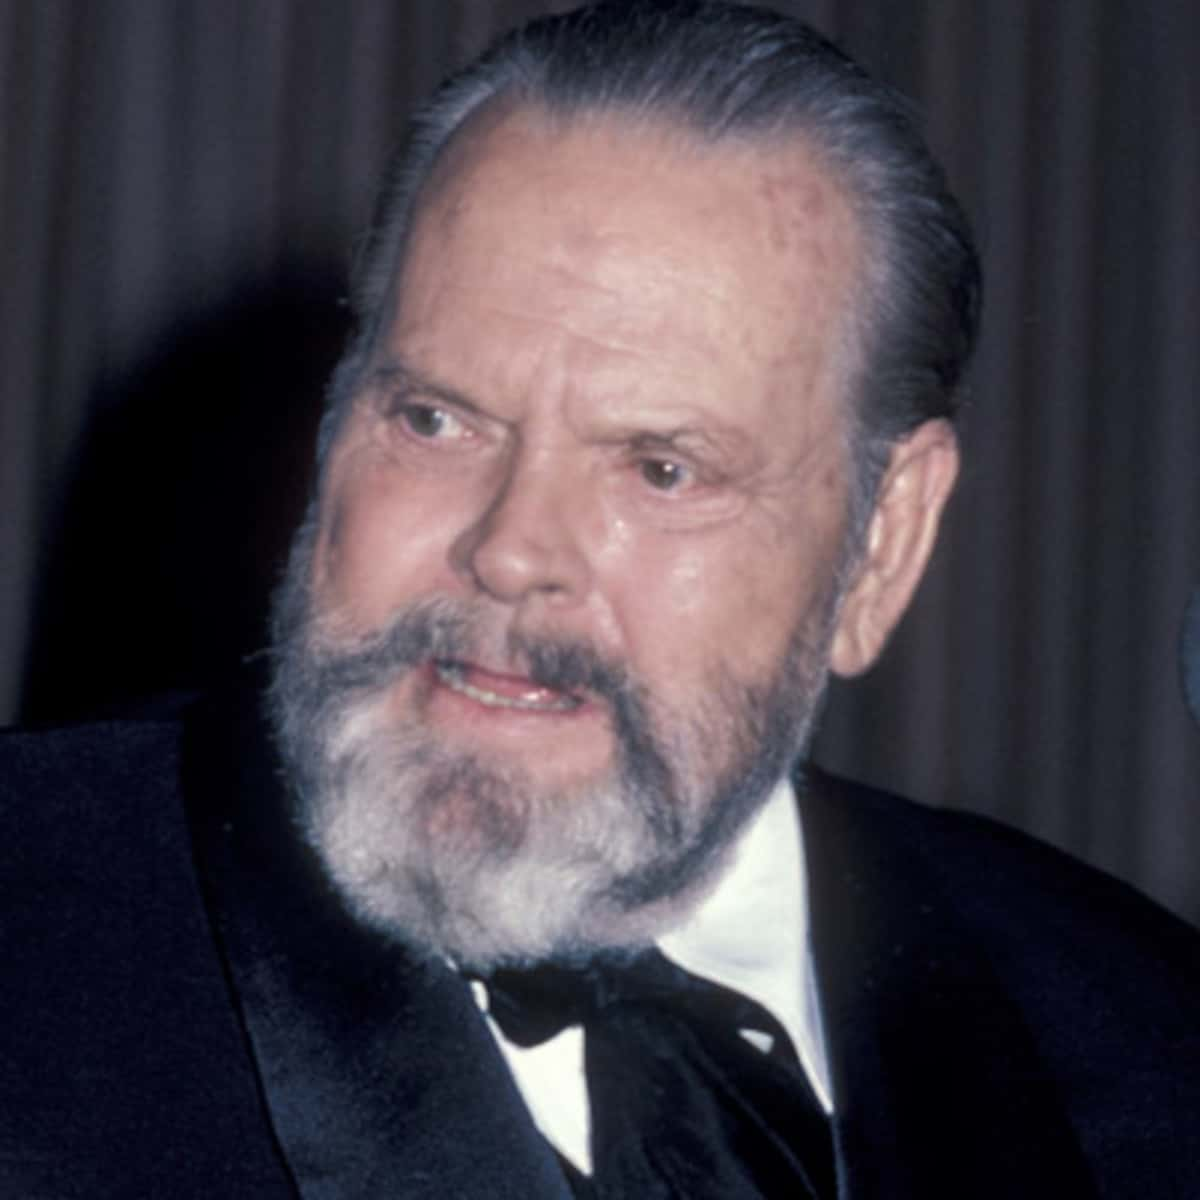 Orson Welles American Actor, Director, Writer, Producer